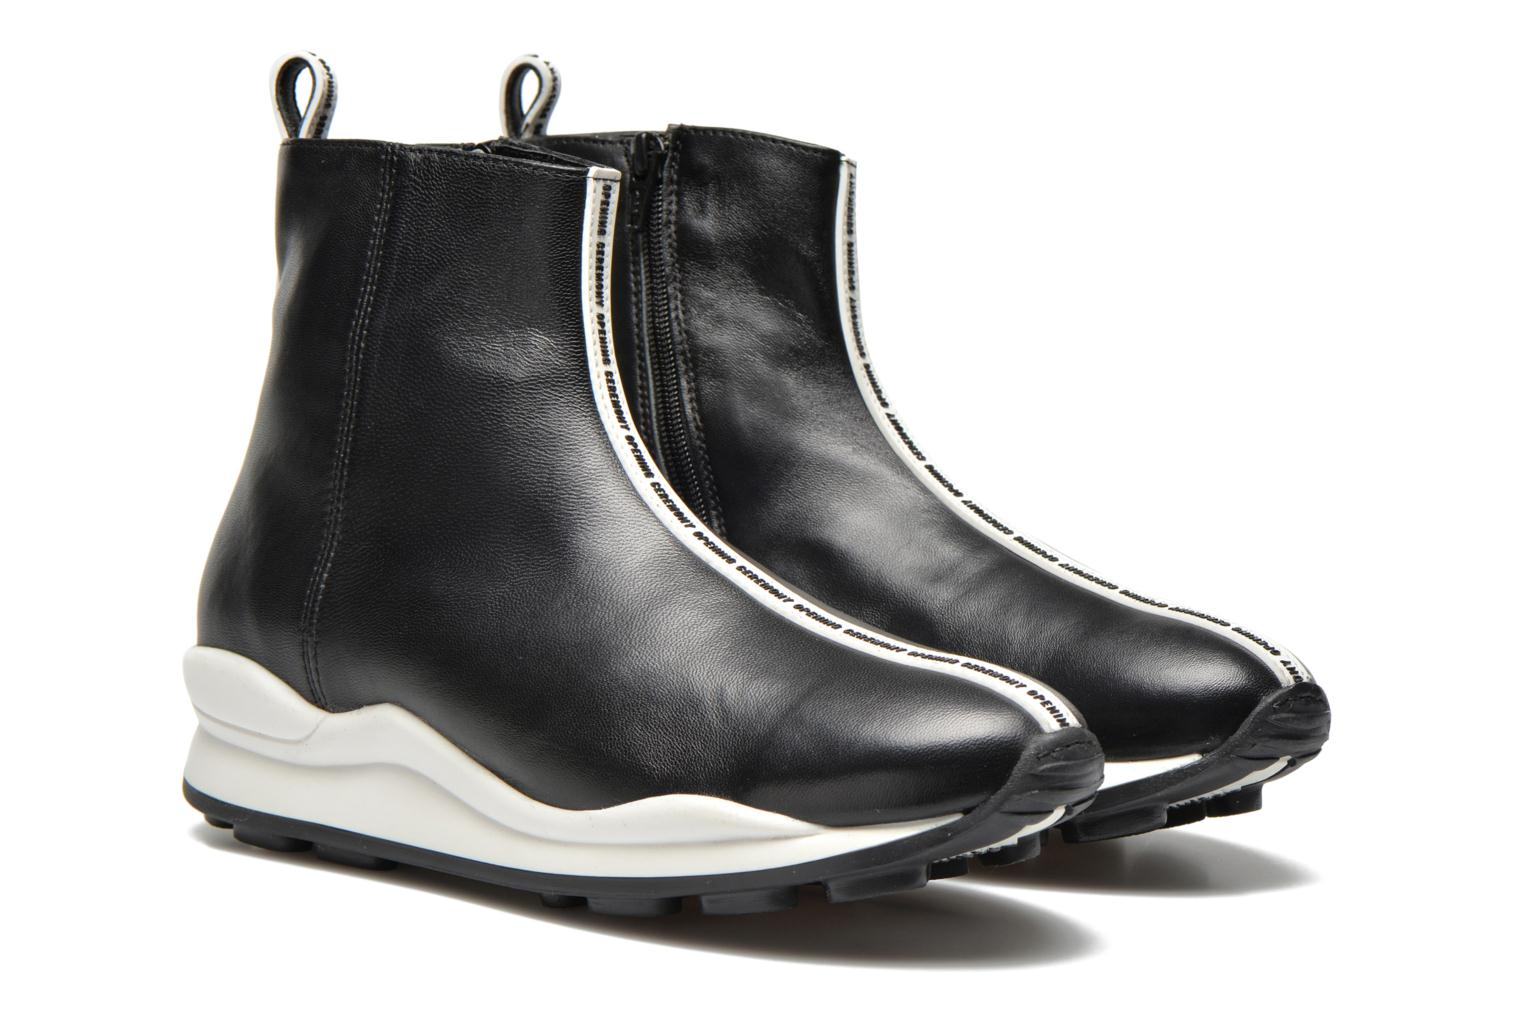 Bottines et boots Opening Ceremony OC Sneaker Boot Noir vue 3/4